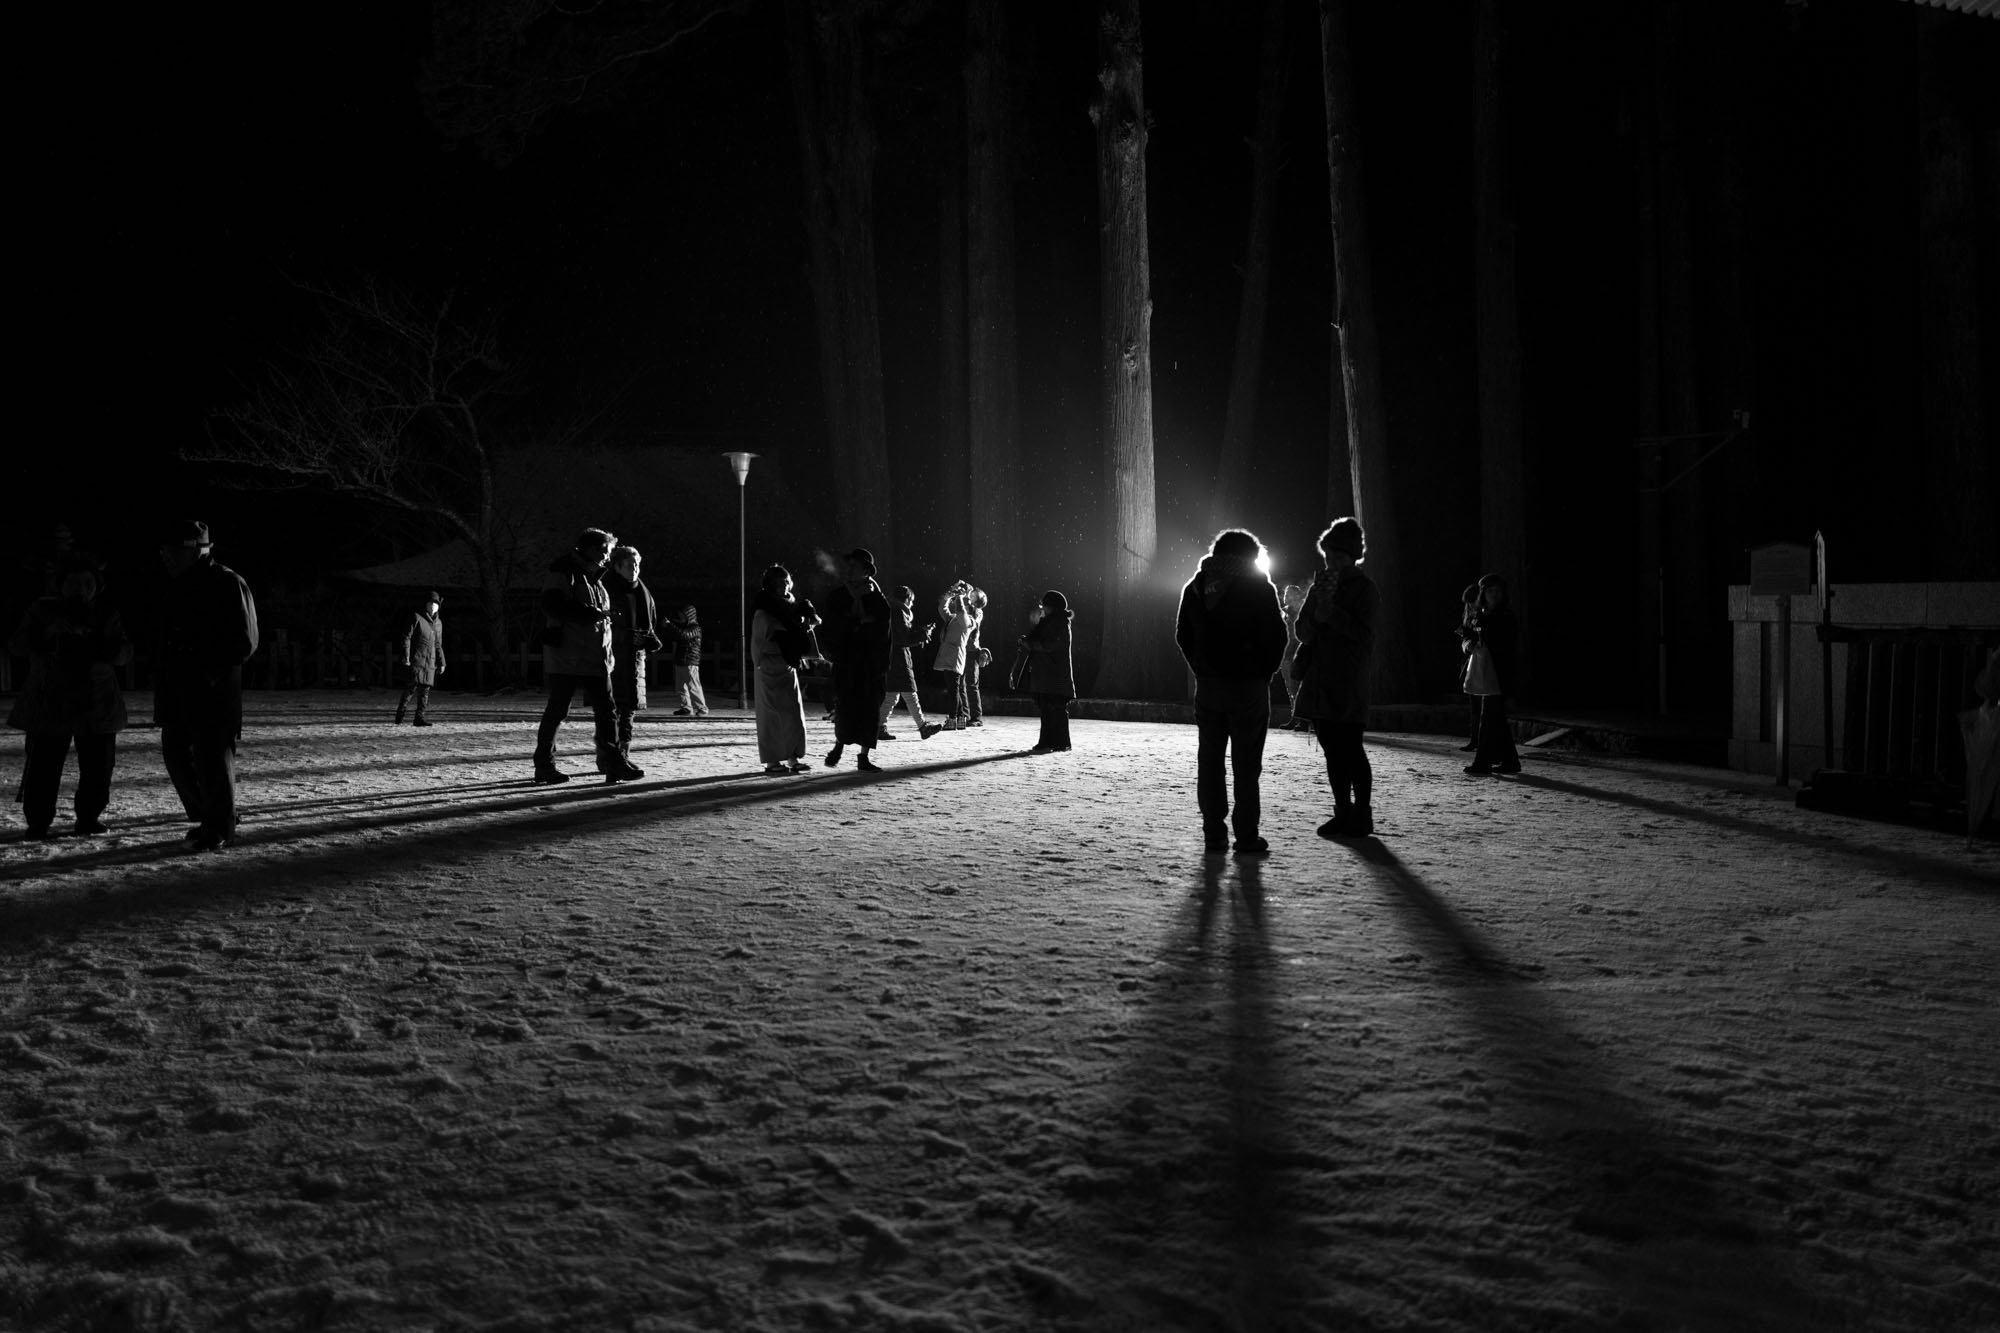 Winterwalk, Koyasan, uncropped